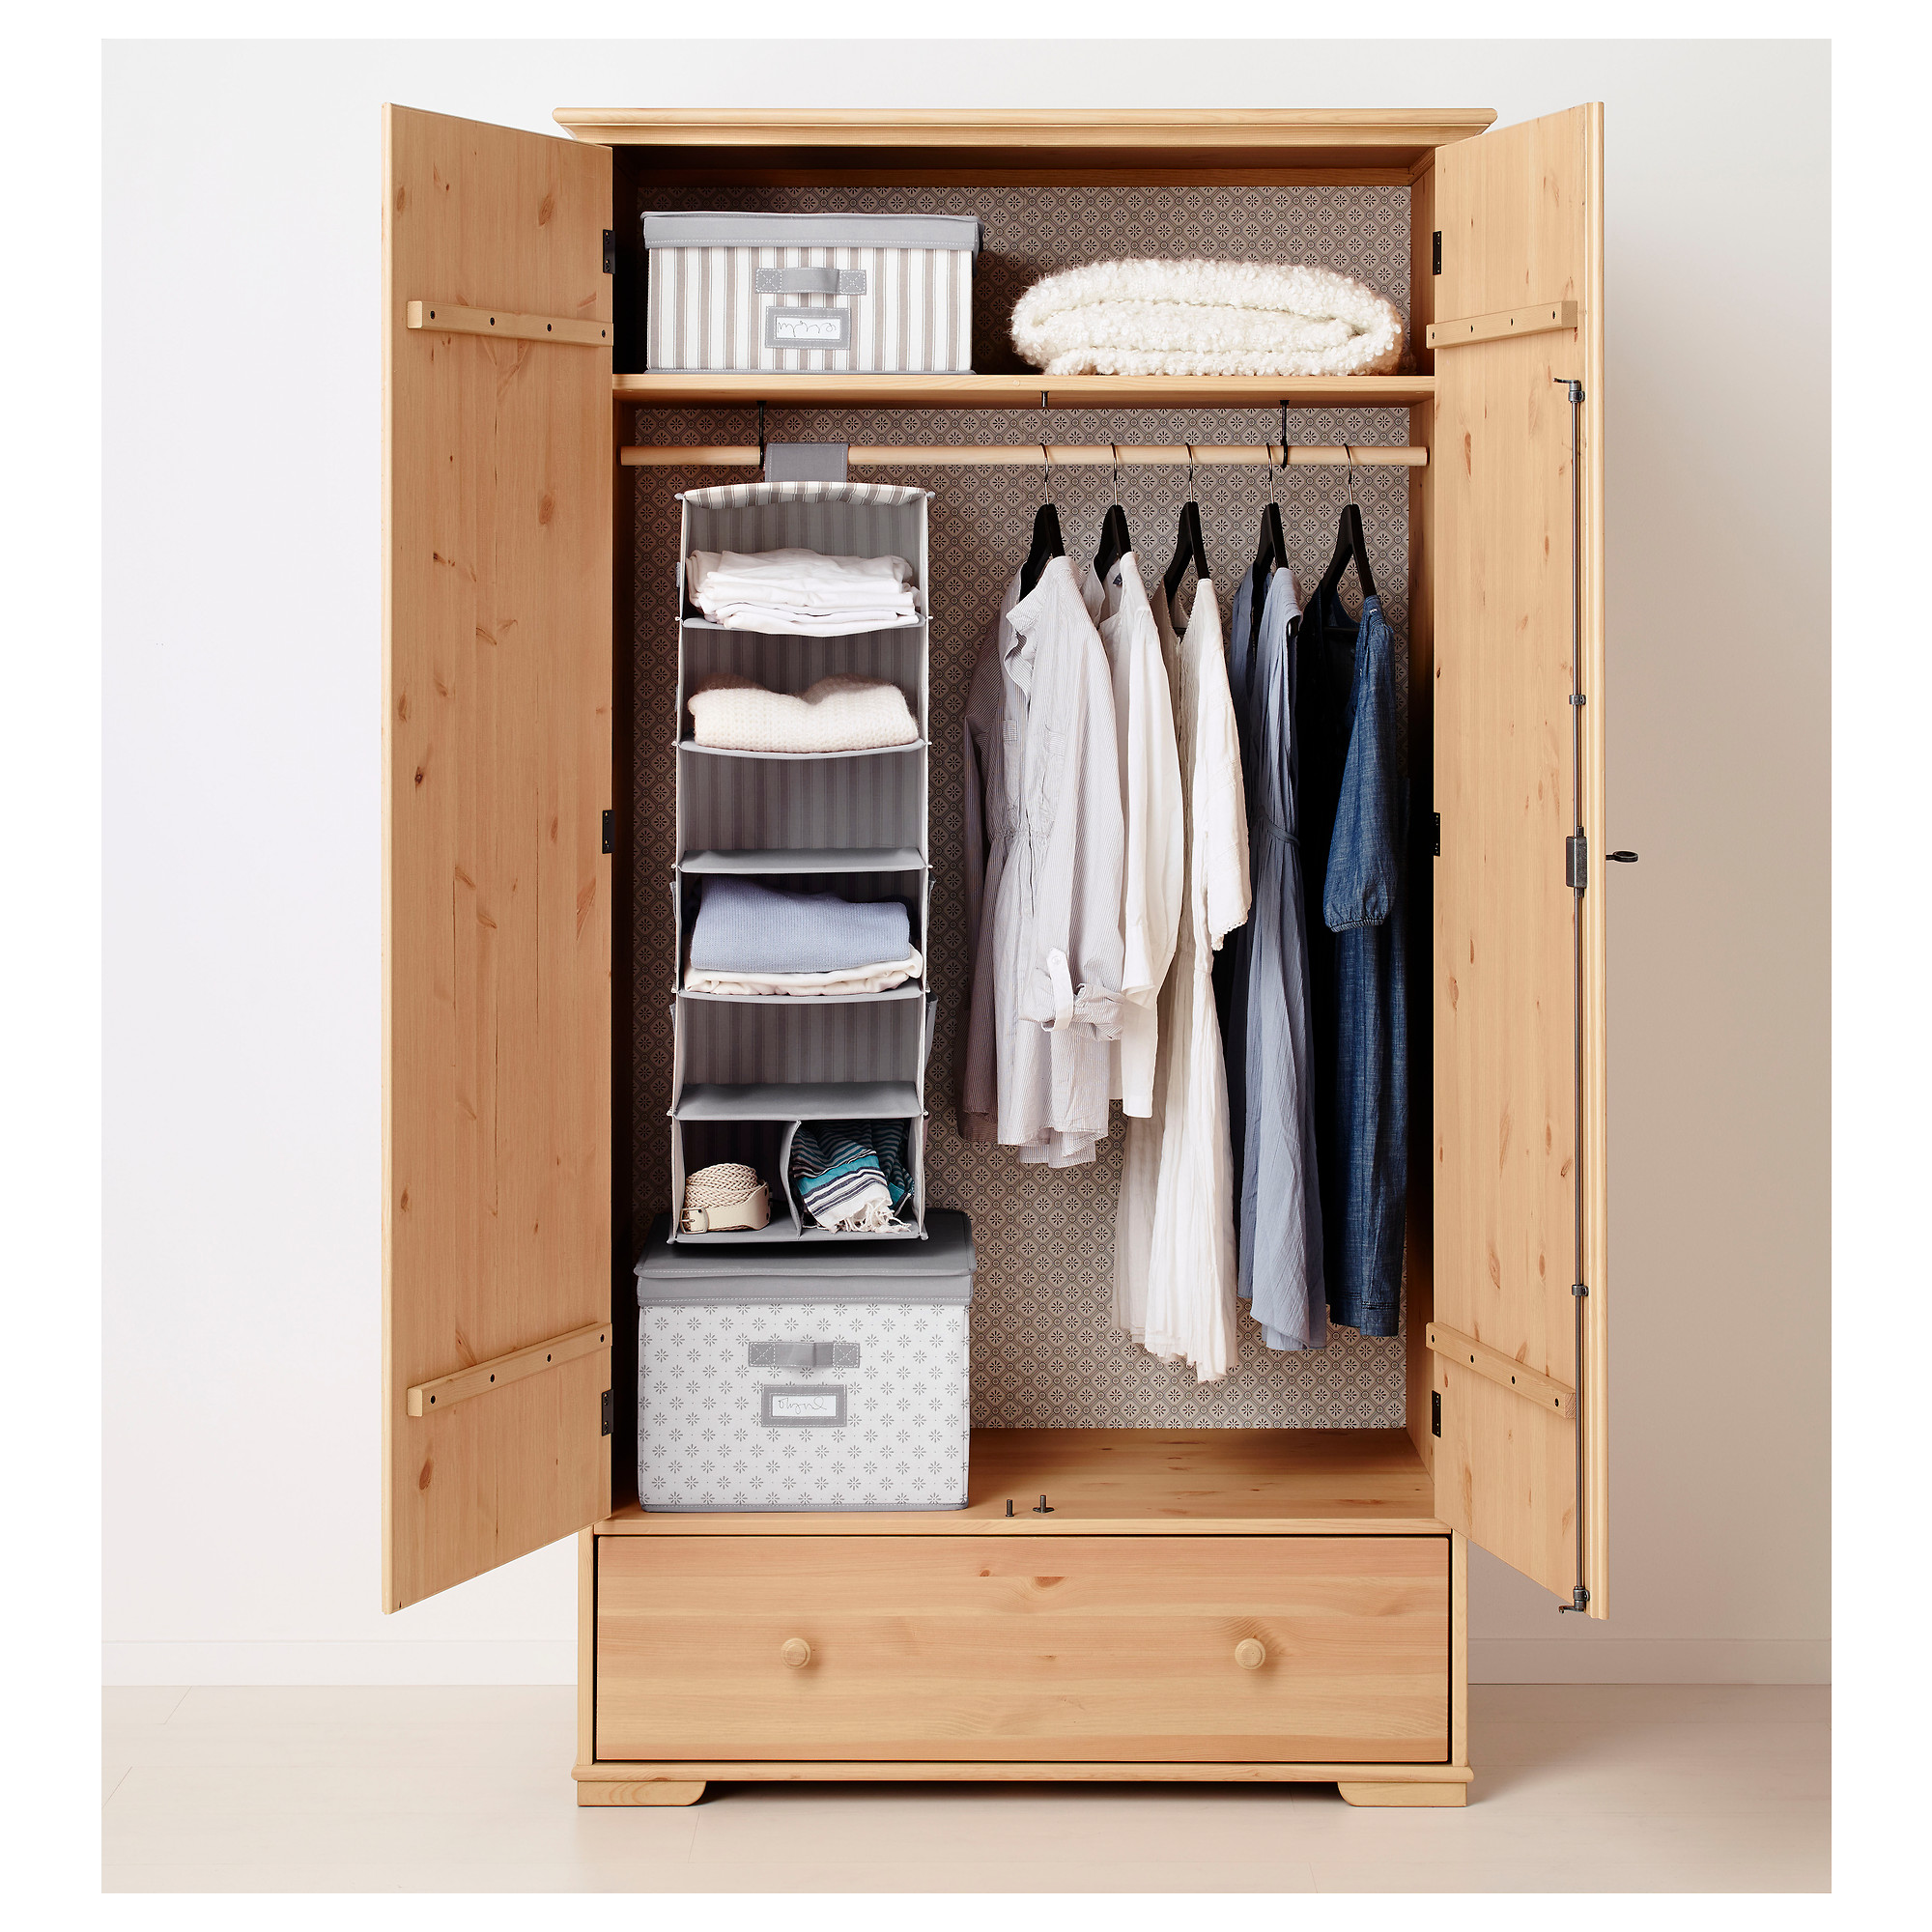 Ikea Wardrobe Storage Solutions | Armoire Furniture Ikea | Ikea Closet Storage